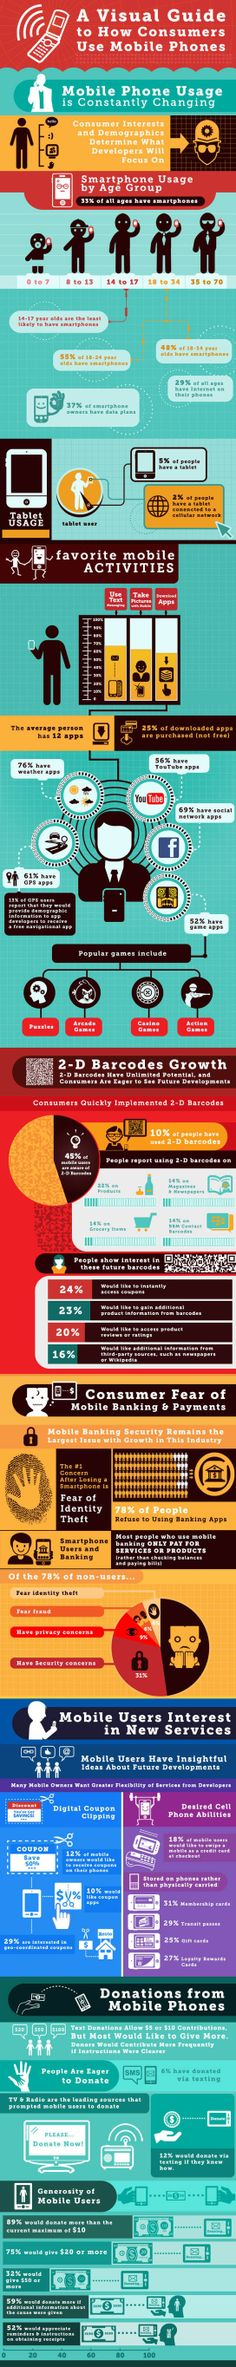 A Visual Guide To How Consumers Use Mobile Phones. Nov 2013 [INFOGRAPHIC]